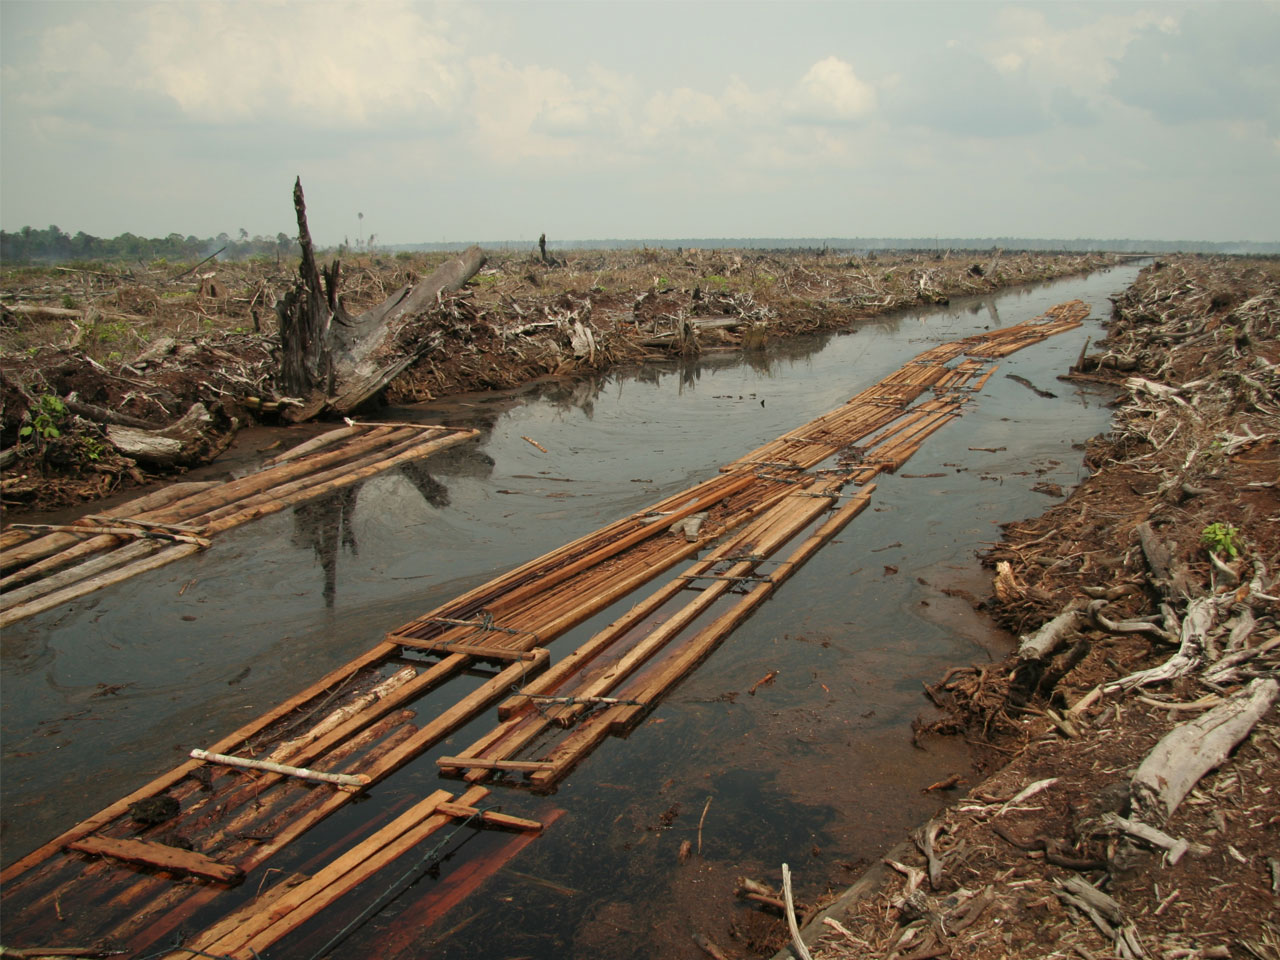 Say No to unsustainable Palm Oil